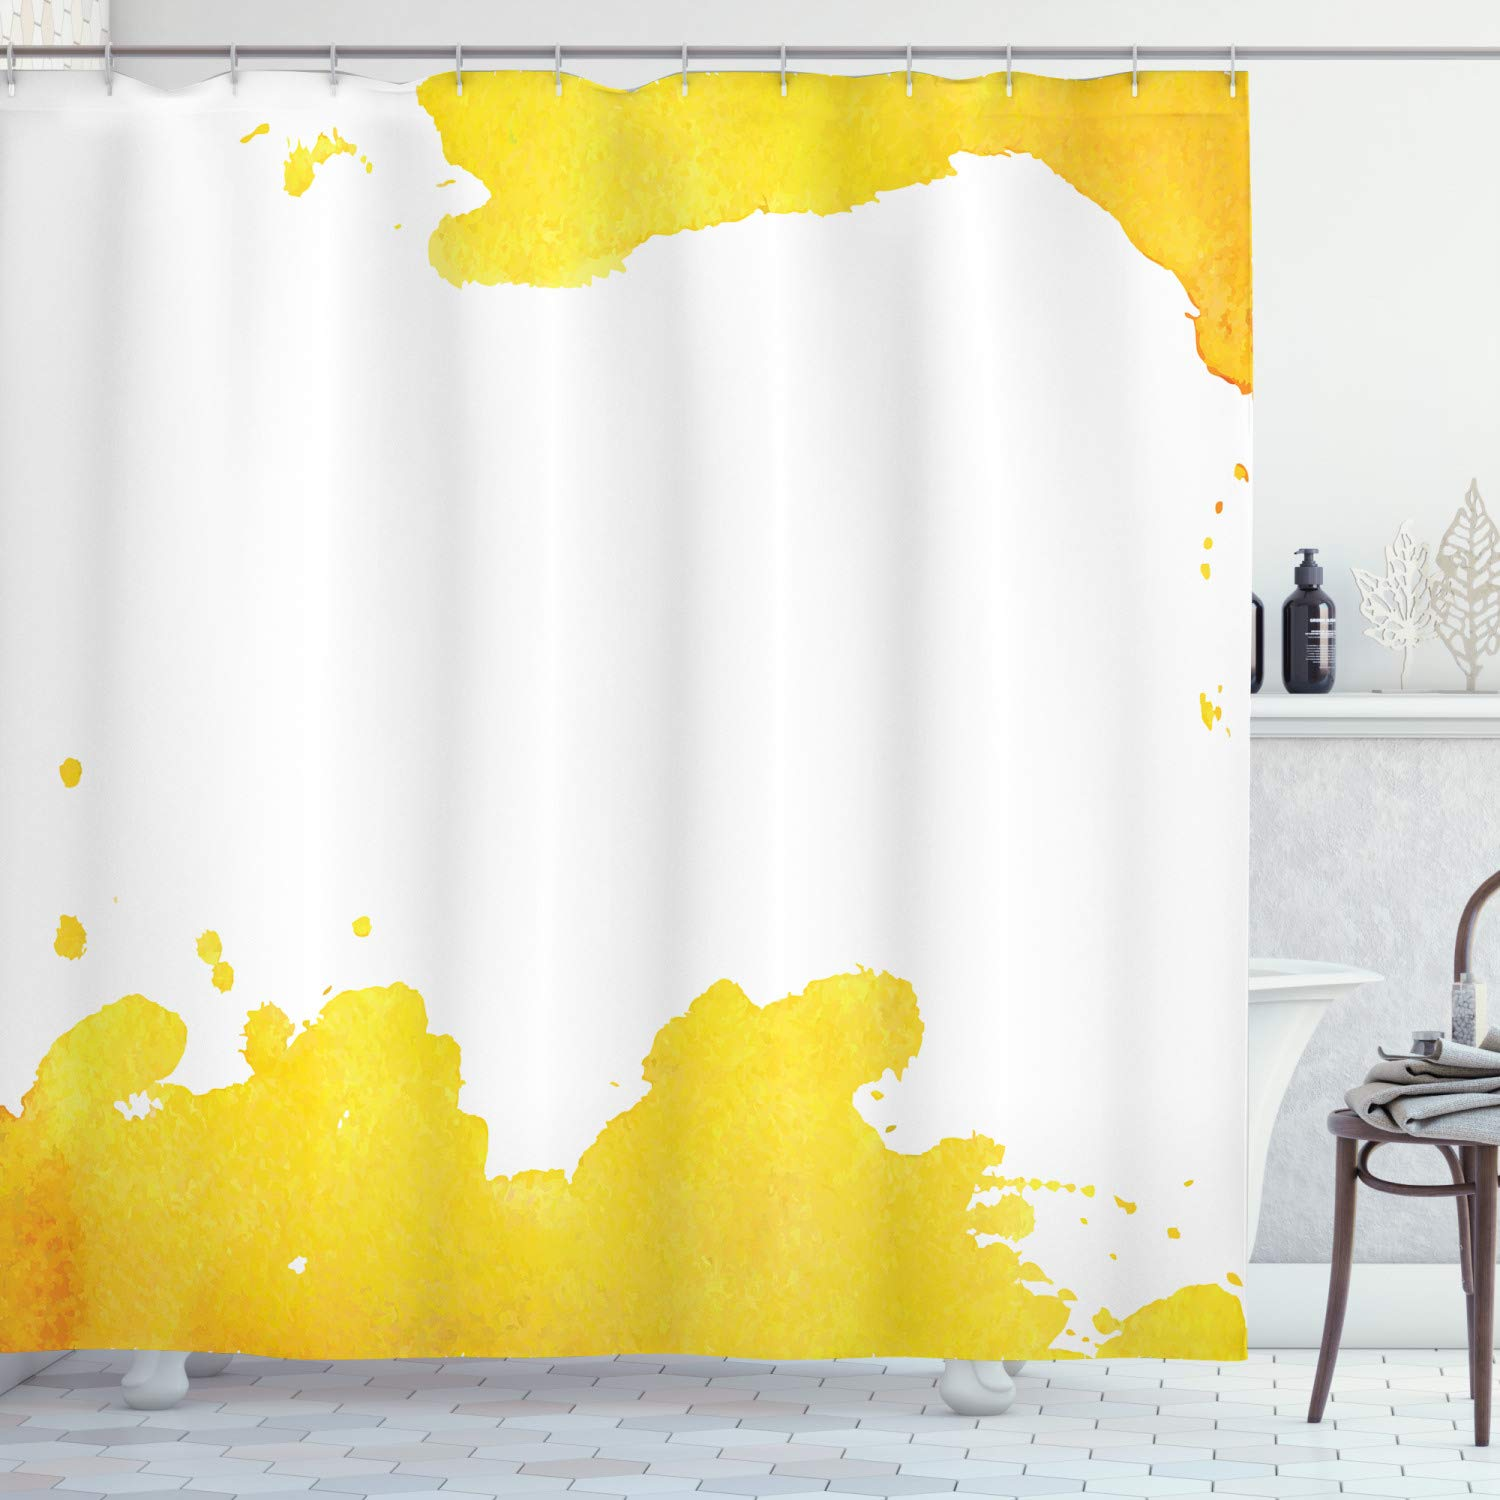 """Ambesonne Vintage Yellow Shower Curtain, White Background with Grunge Looking Watercolor Stains Design, Cloth Fabric Bathroom Decor Set with Hooks, 75"""" Long, Yellow and White"""